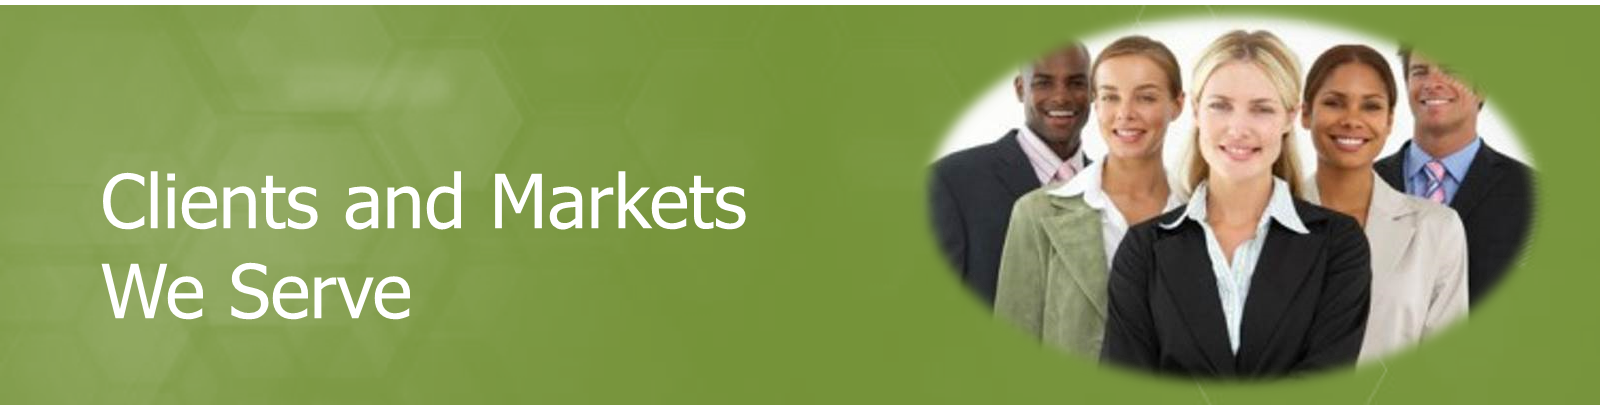 Clients and Markets We Serve